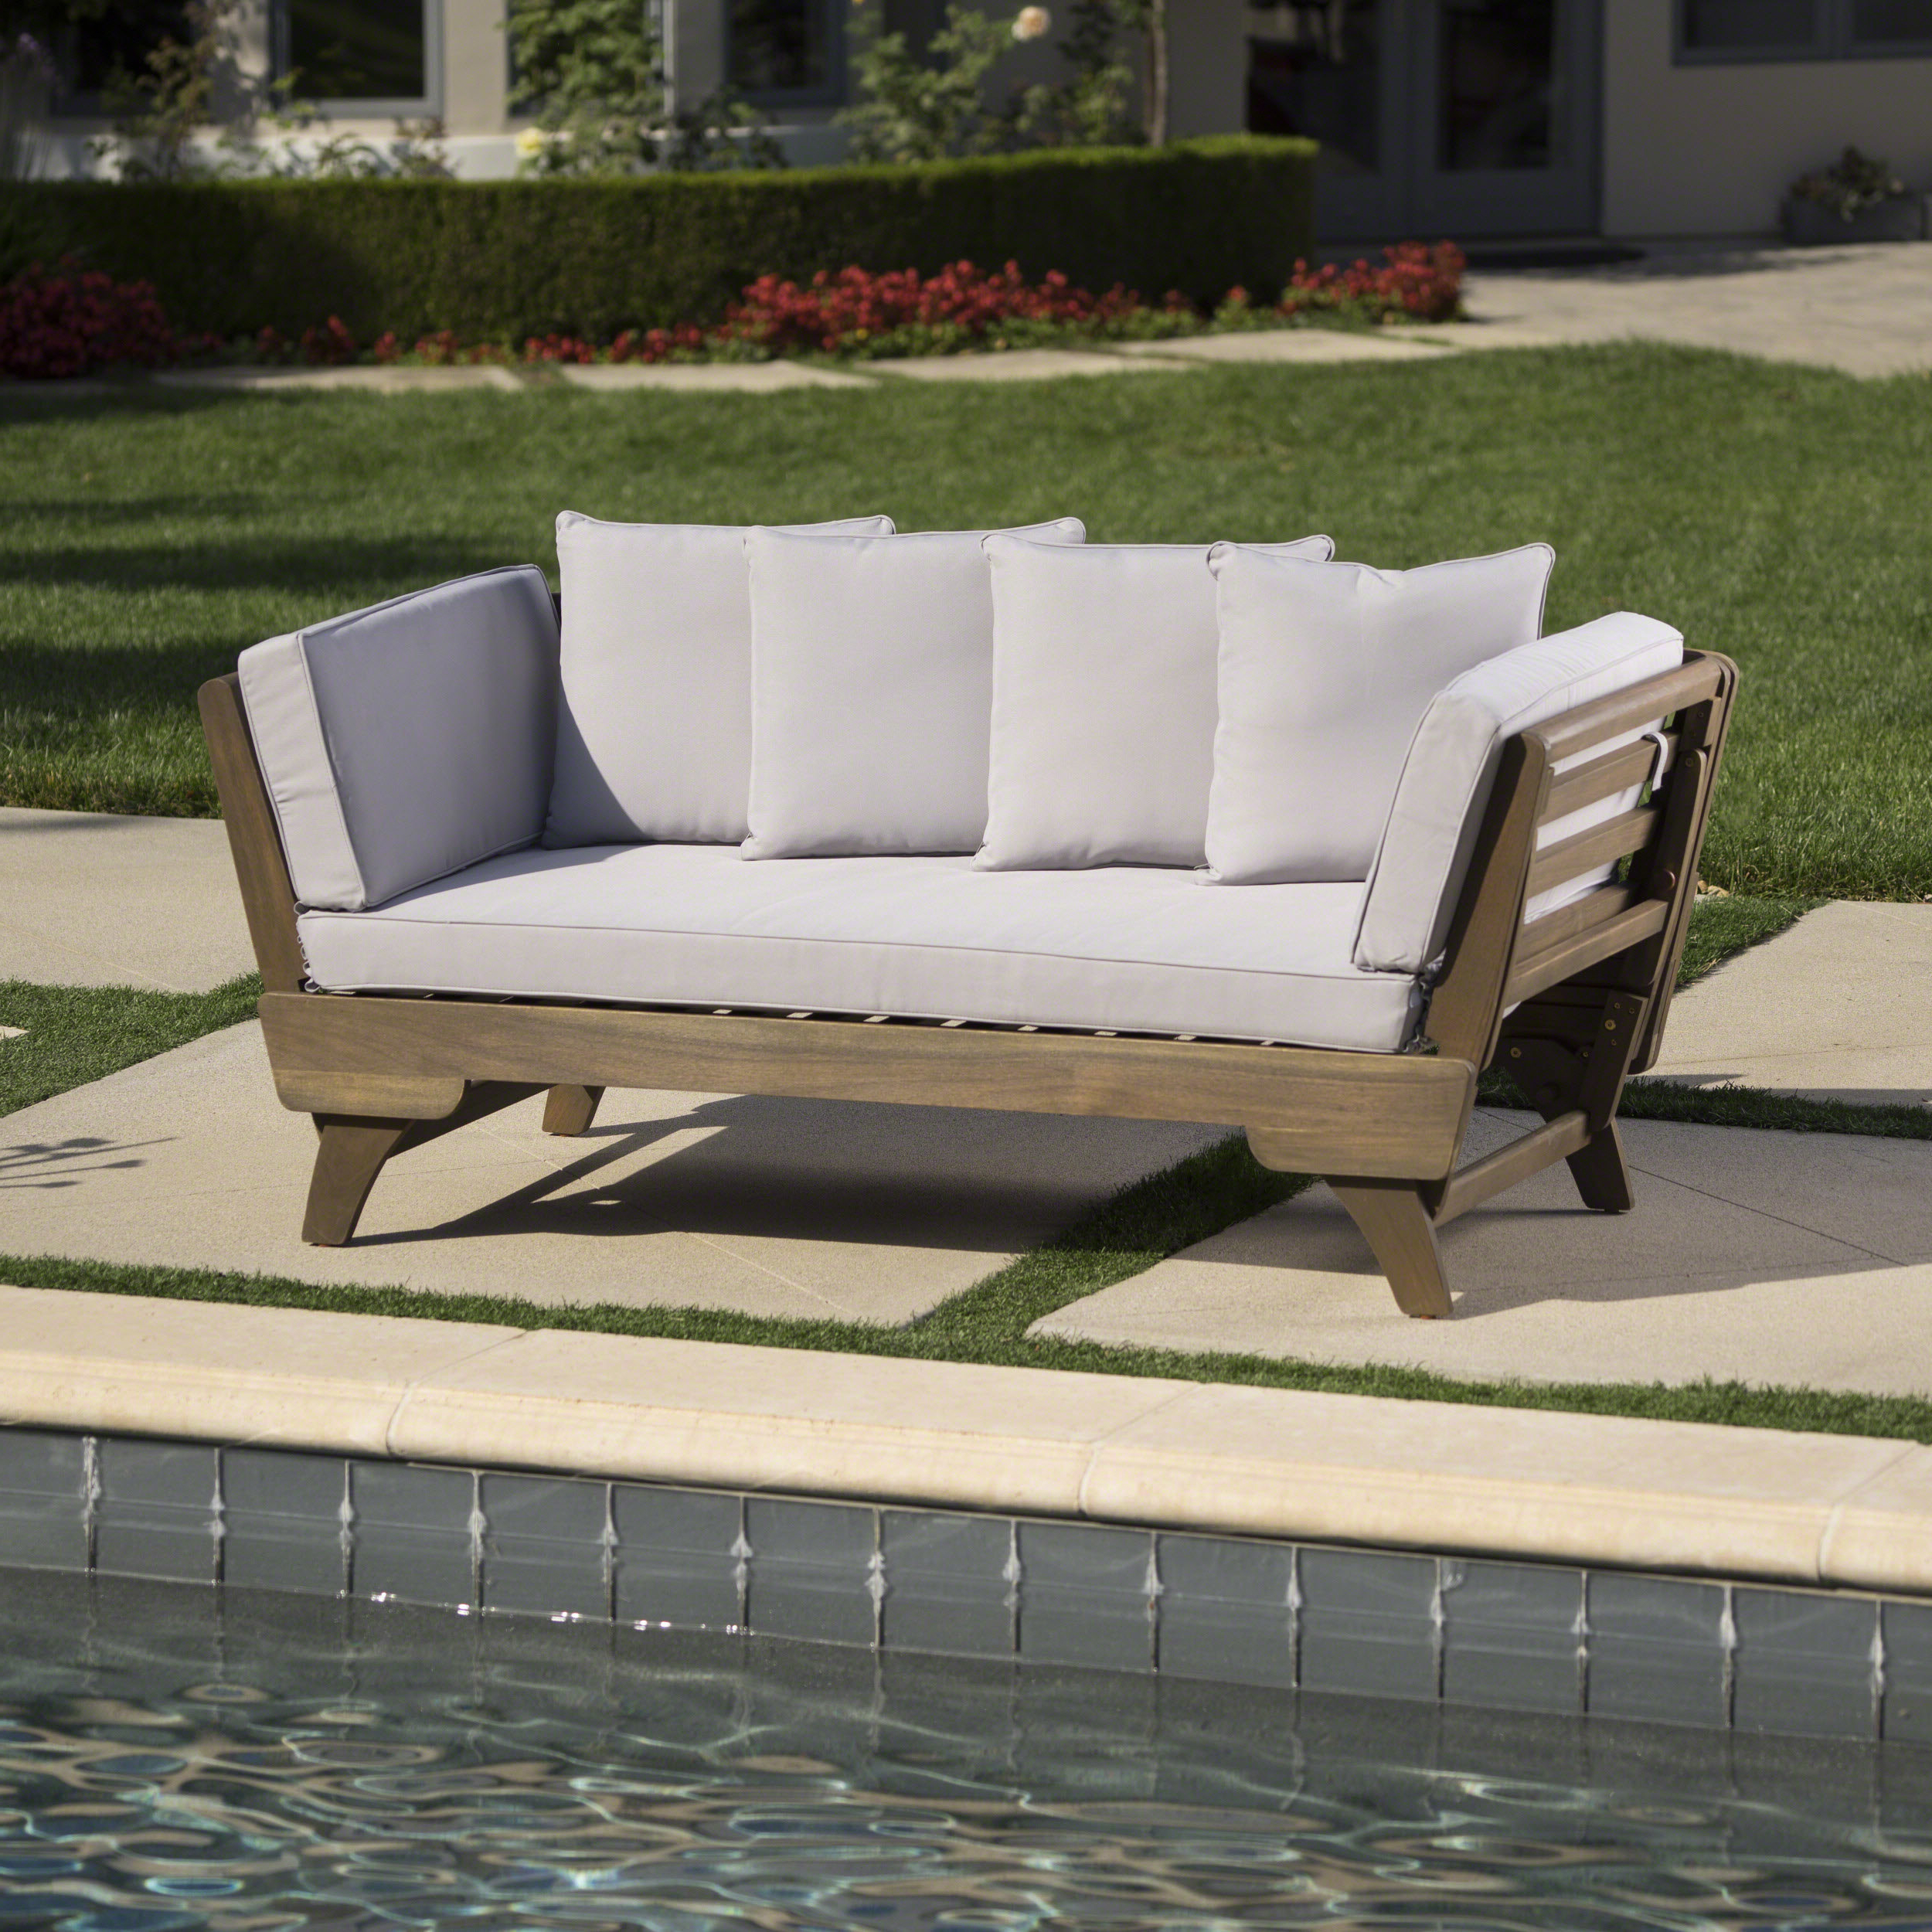 Farmhouse & Rustic Outdoor Sofas (View 7 of 20)